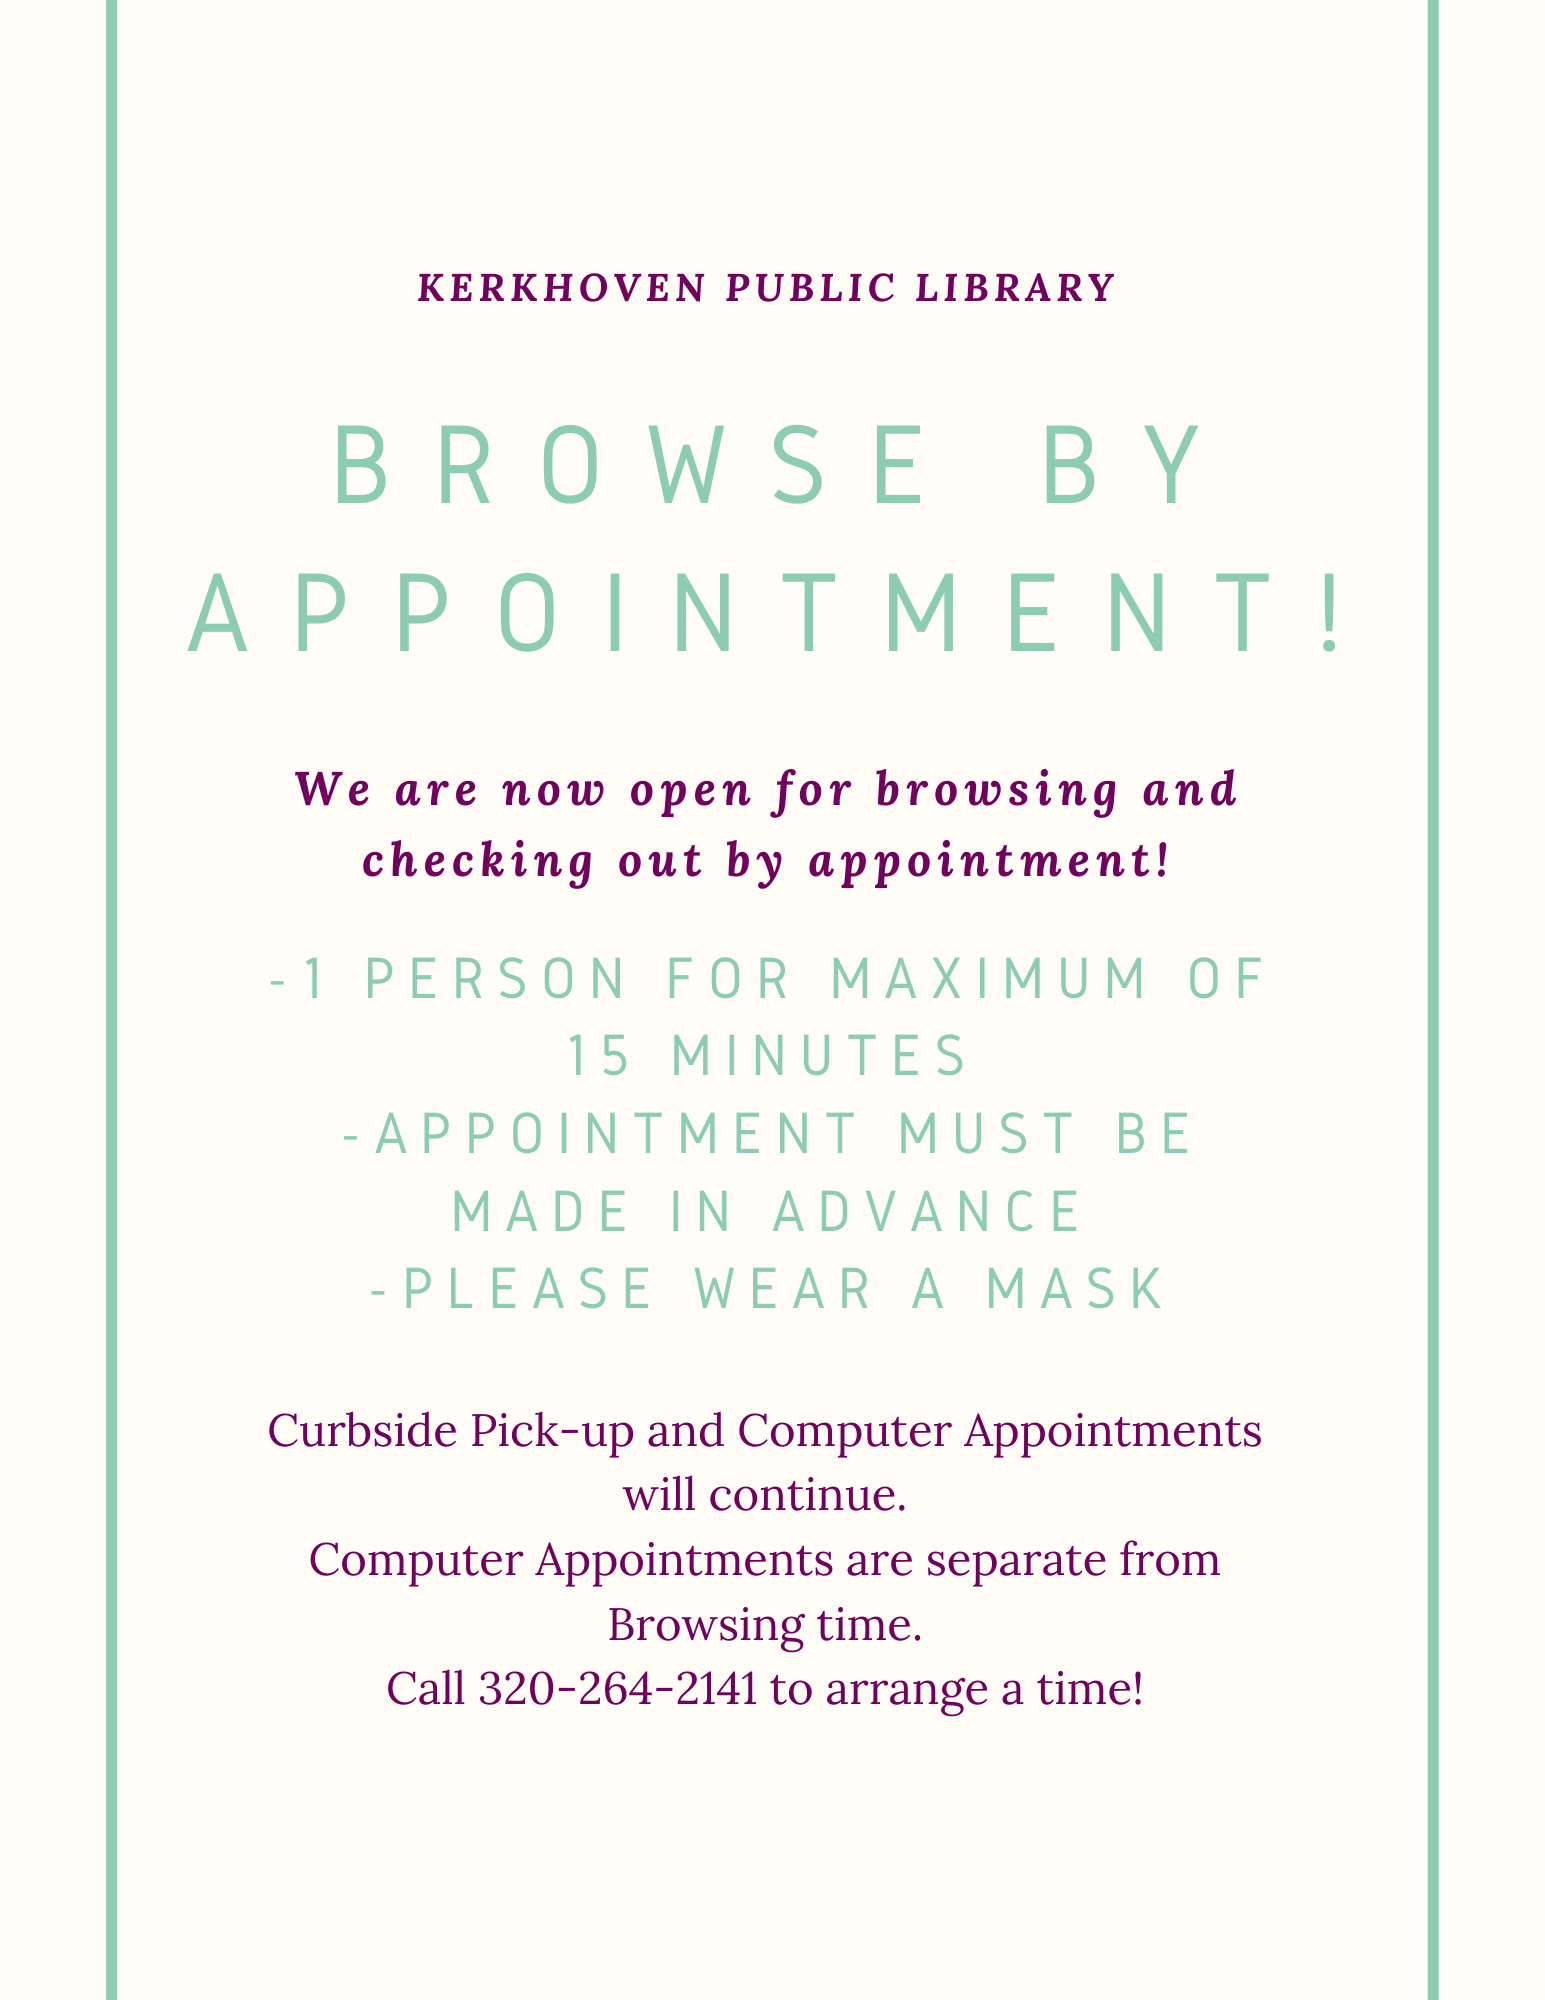 You can now browse by appointment at the Kerkhoven library! Appointments are for 15 minutes and must be made in advance. We are asking that the public wear a mask while inside the library. Call 320-264-2141 to arrange your appointment!